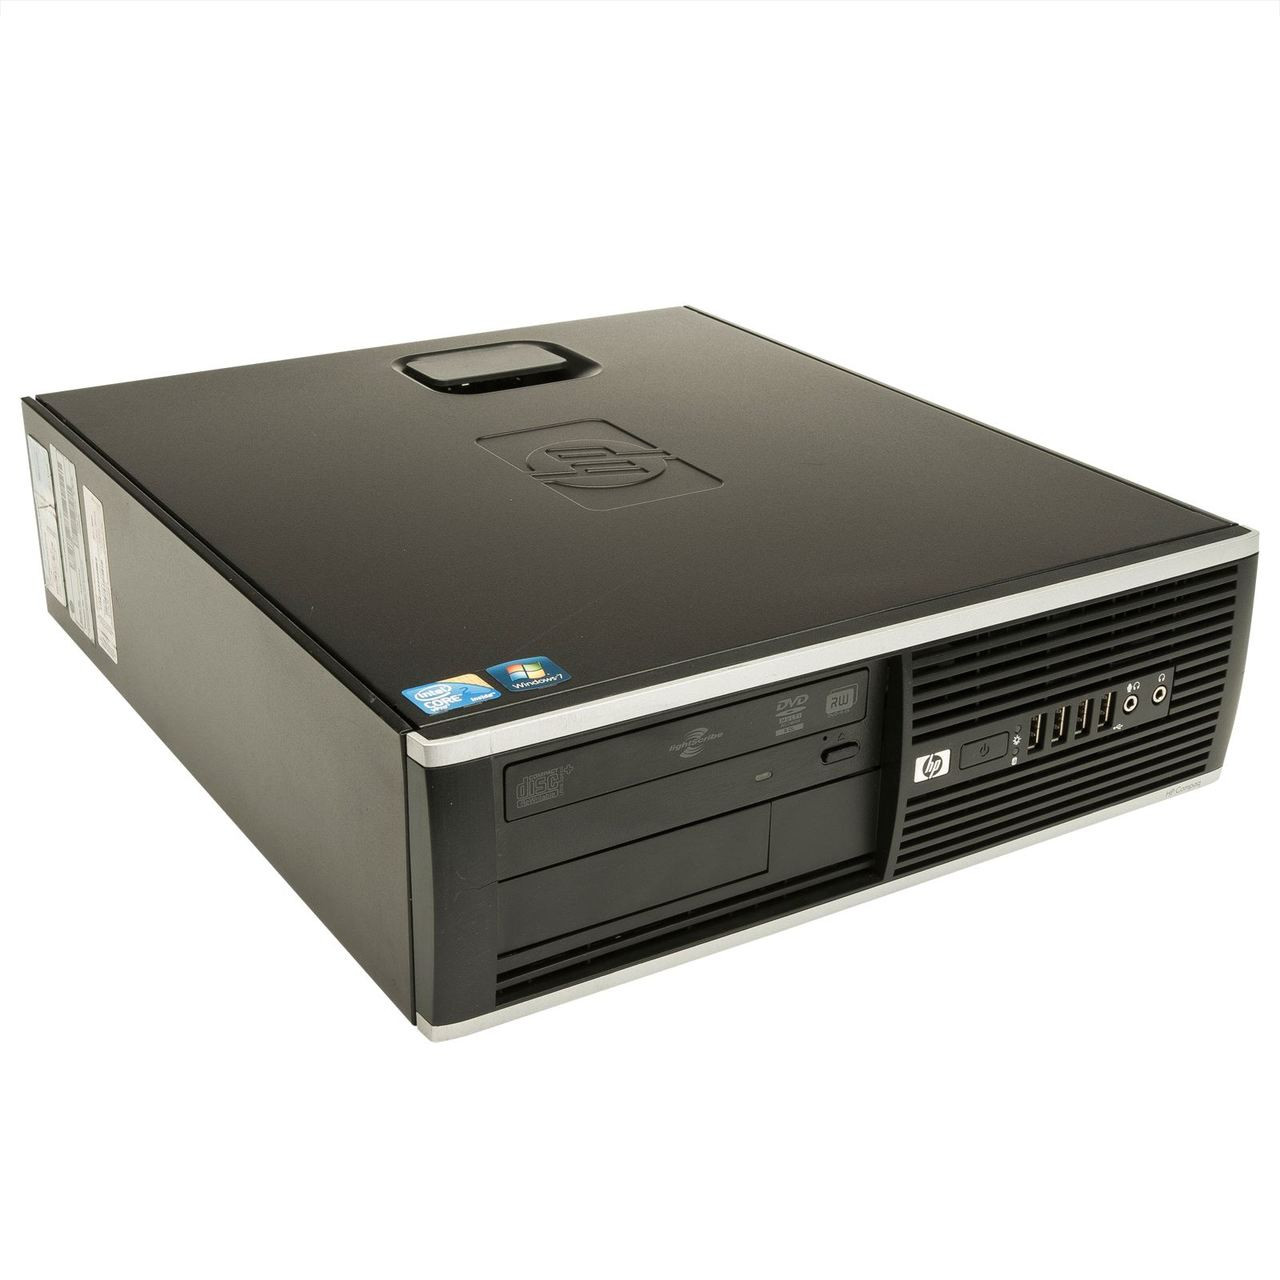 HP Compaq Elite 8000 SFF Intel Core 2 Duo 3.0GHz, 4GB Ram, 250GB HDD, DVD-RW, Windows 7 Pro 64 Desktop Computer